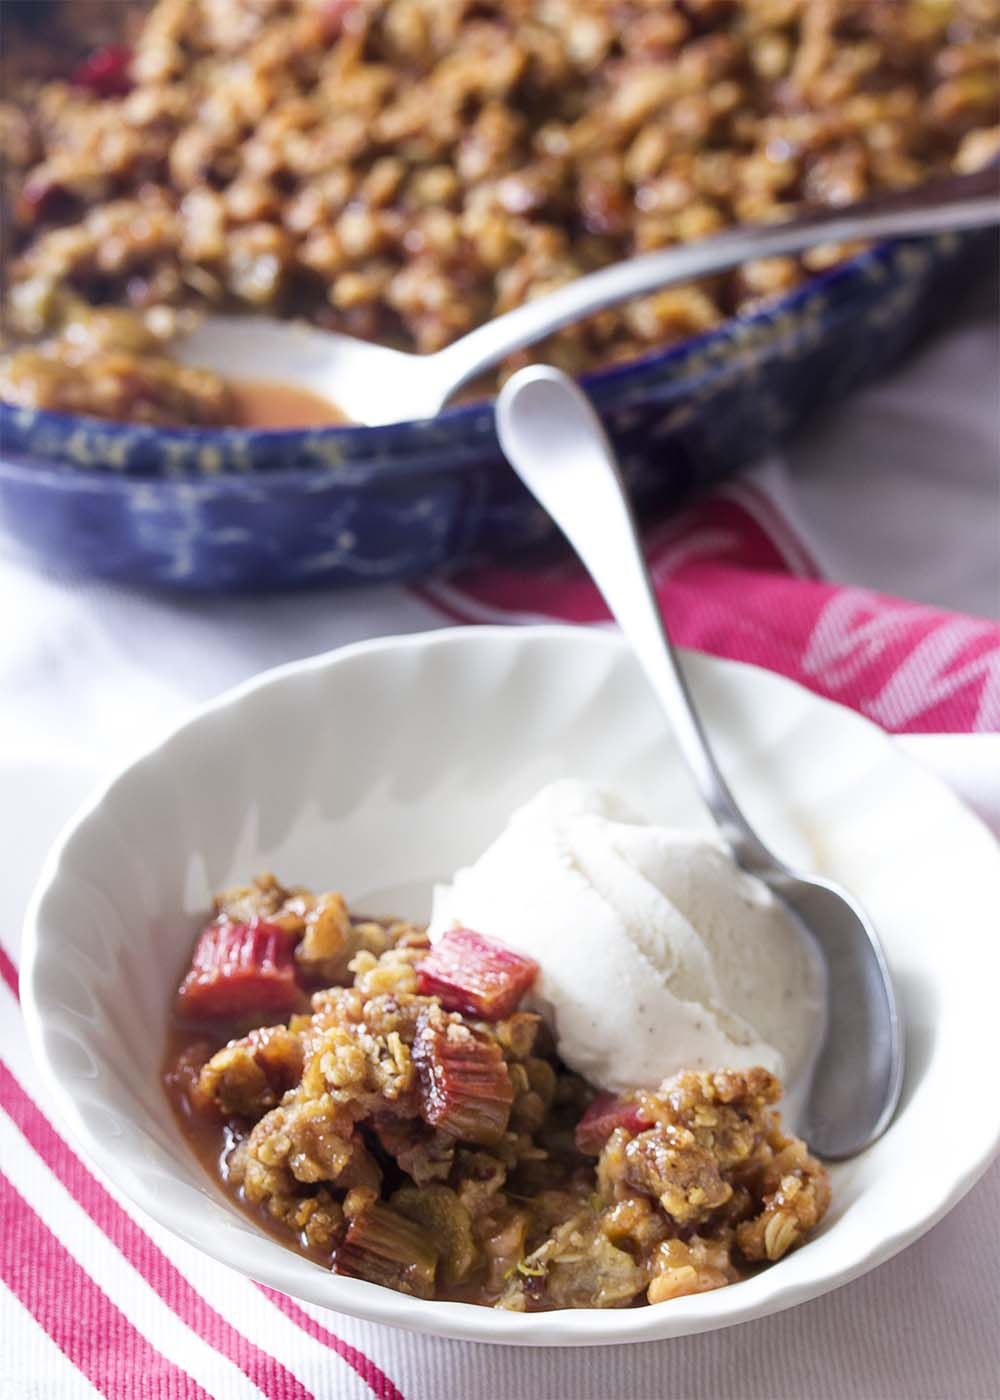 A white bowl with a scoop of vanilla ice cream, some rhubarb crisp, and a spoon.